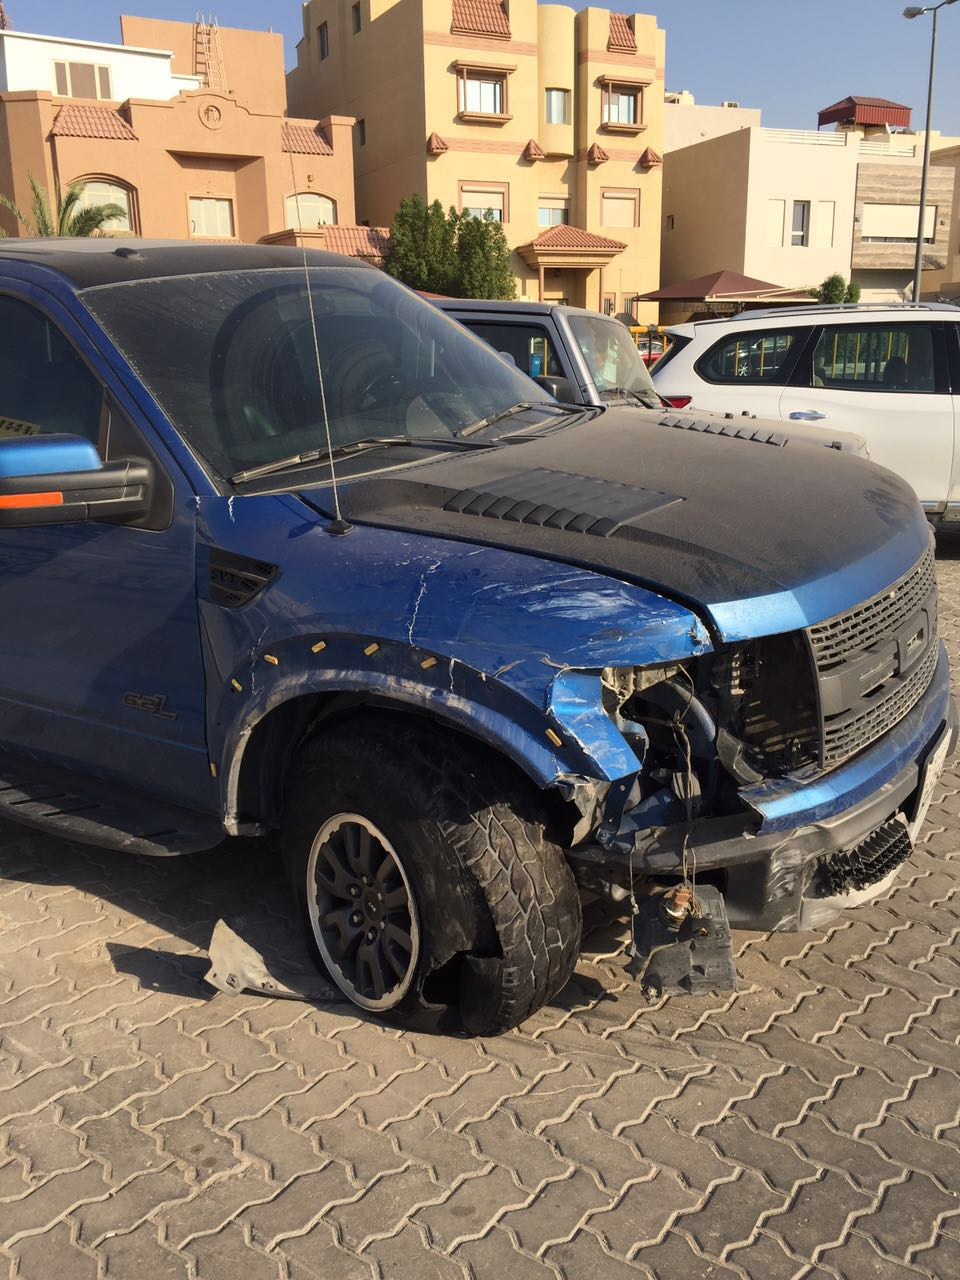 title>Kuwaiti auto insurance after an Accident   Life in Kuwait